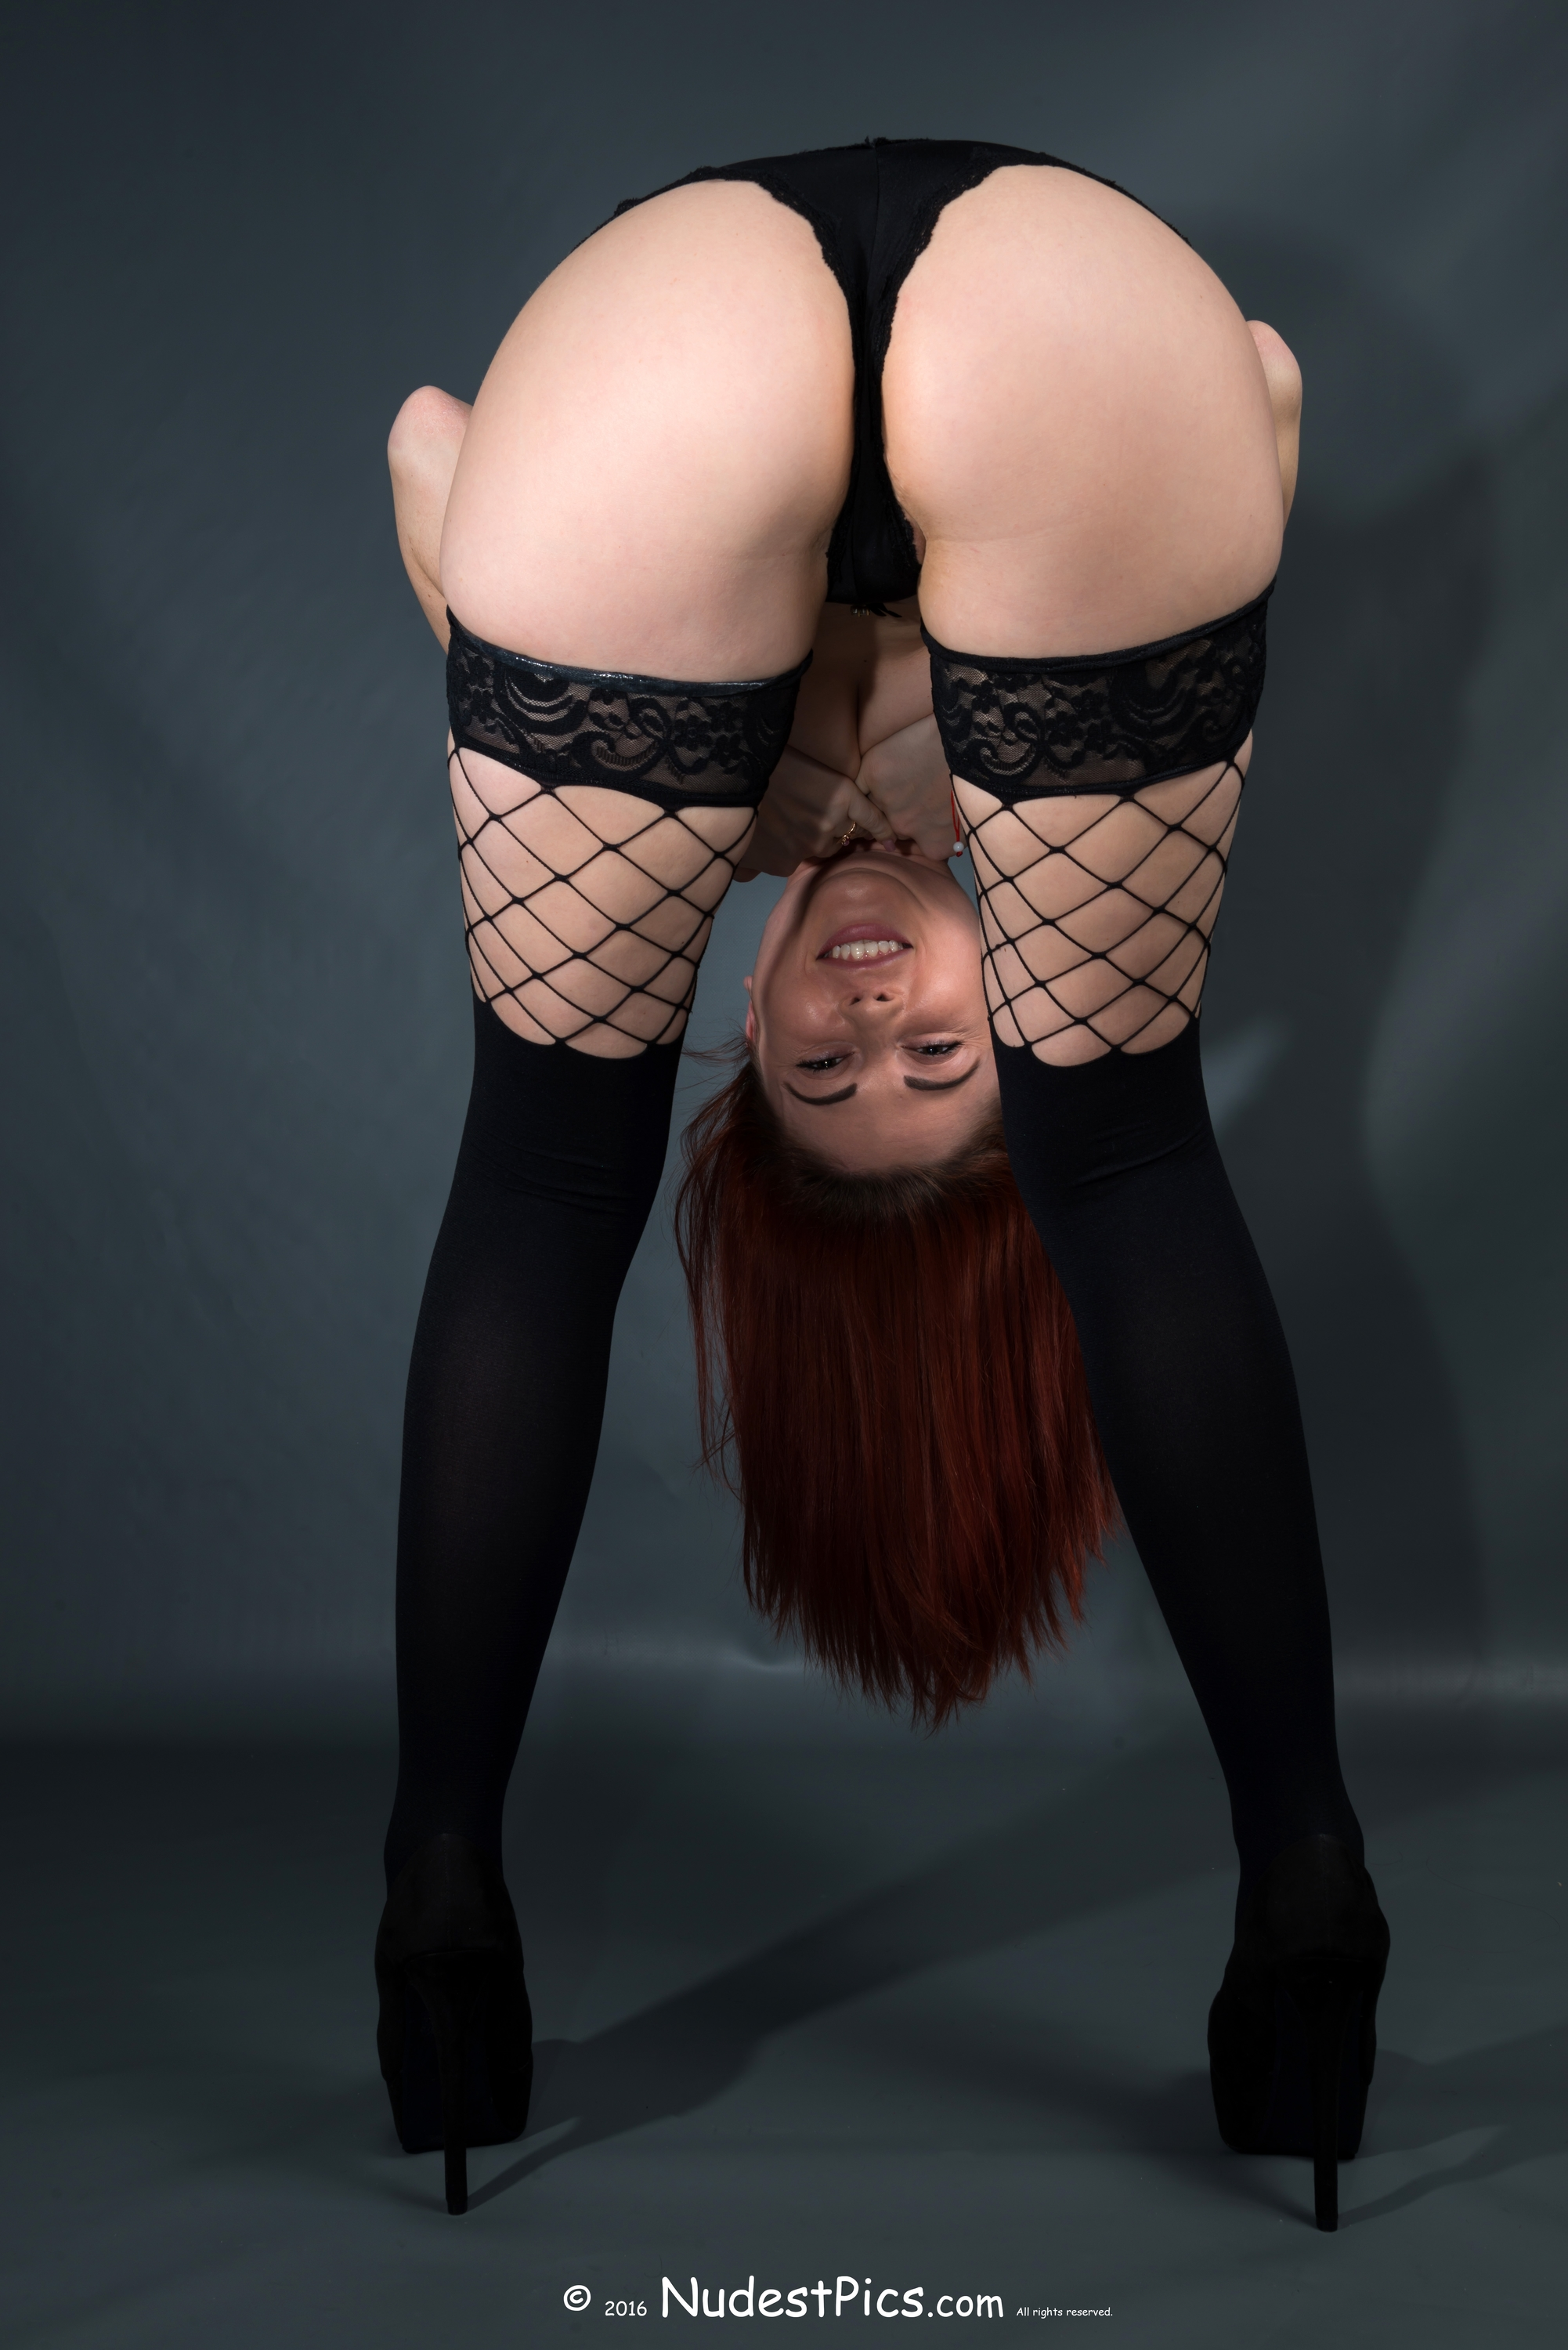 Bent Over Redhead Babe with Hot Lingerie Free Full HD ...